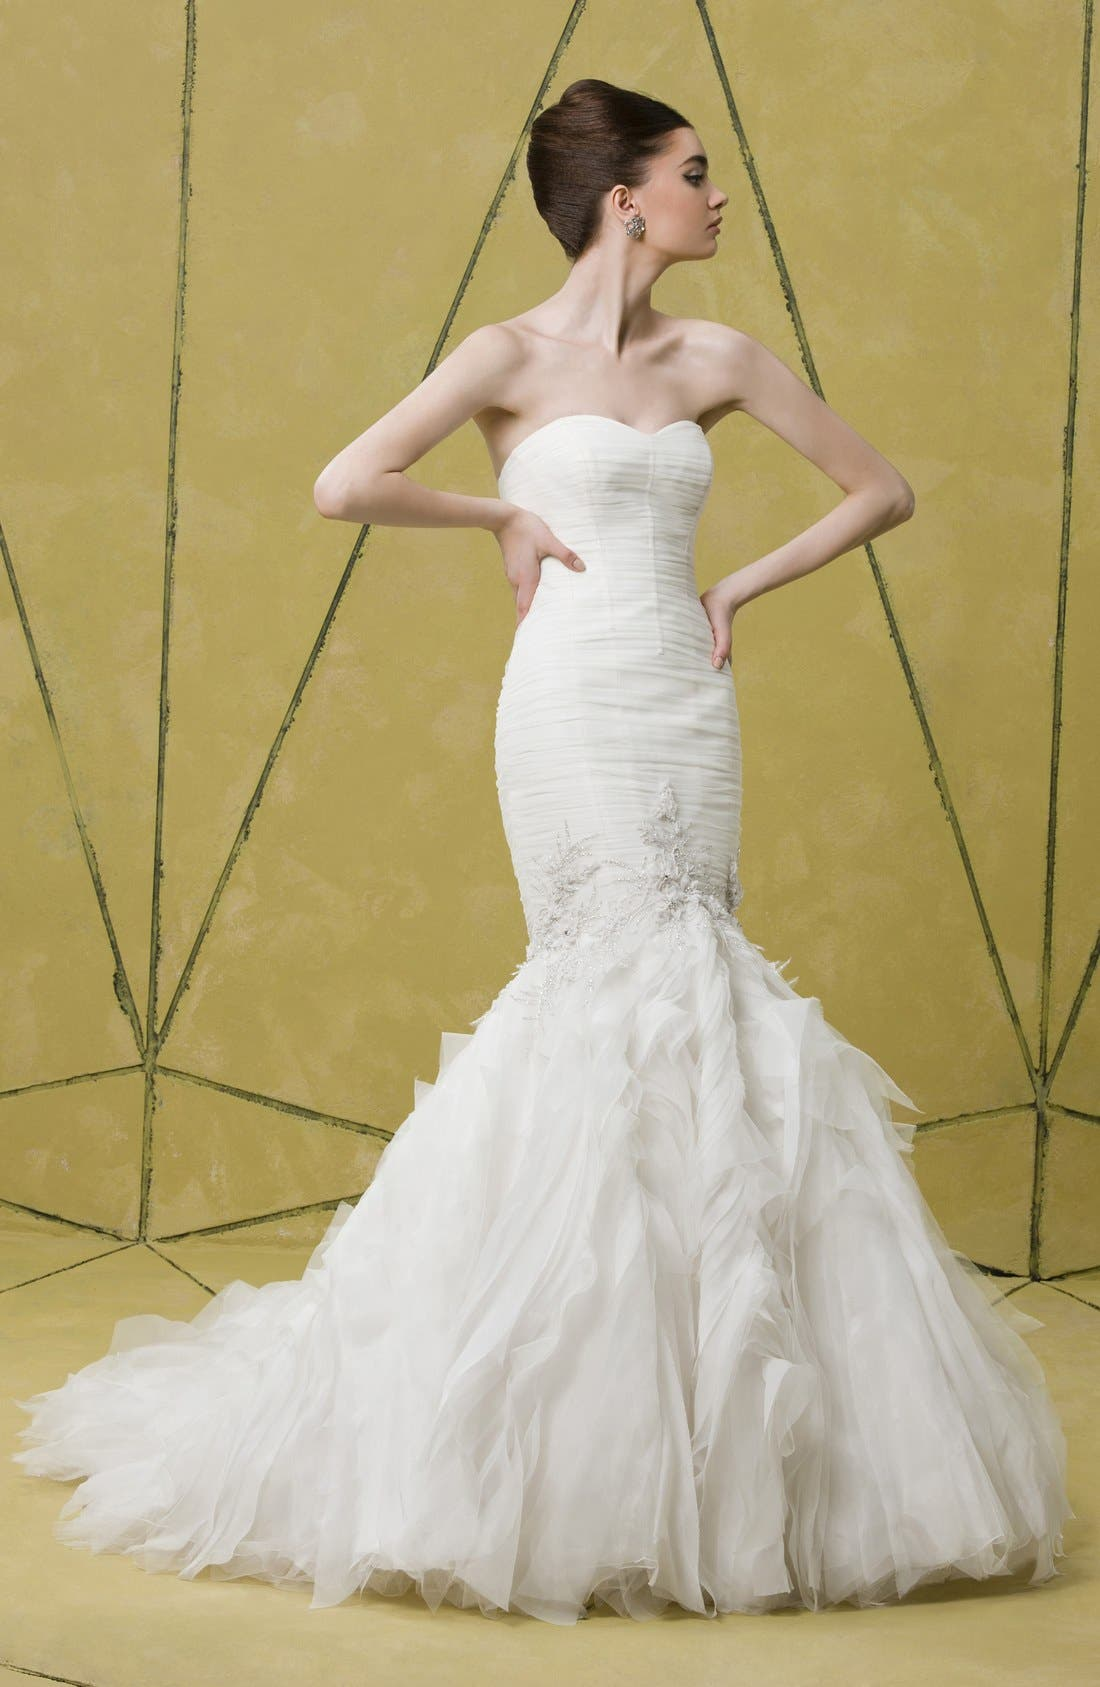 Alternate Image 4  - Badgley Mischka Bridal 'Bridgette' Embellished Tulle Mermaid Dress (In Stores Only)